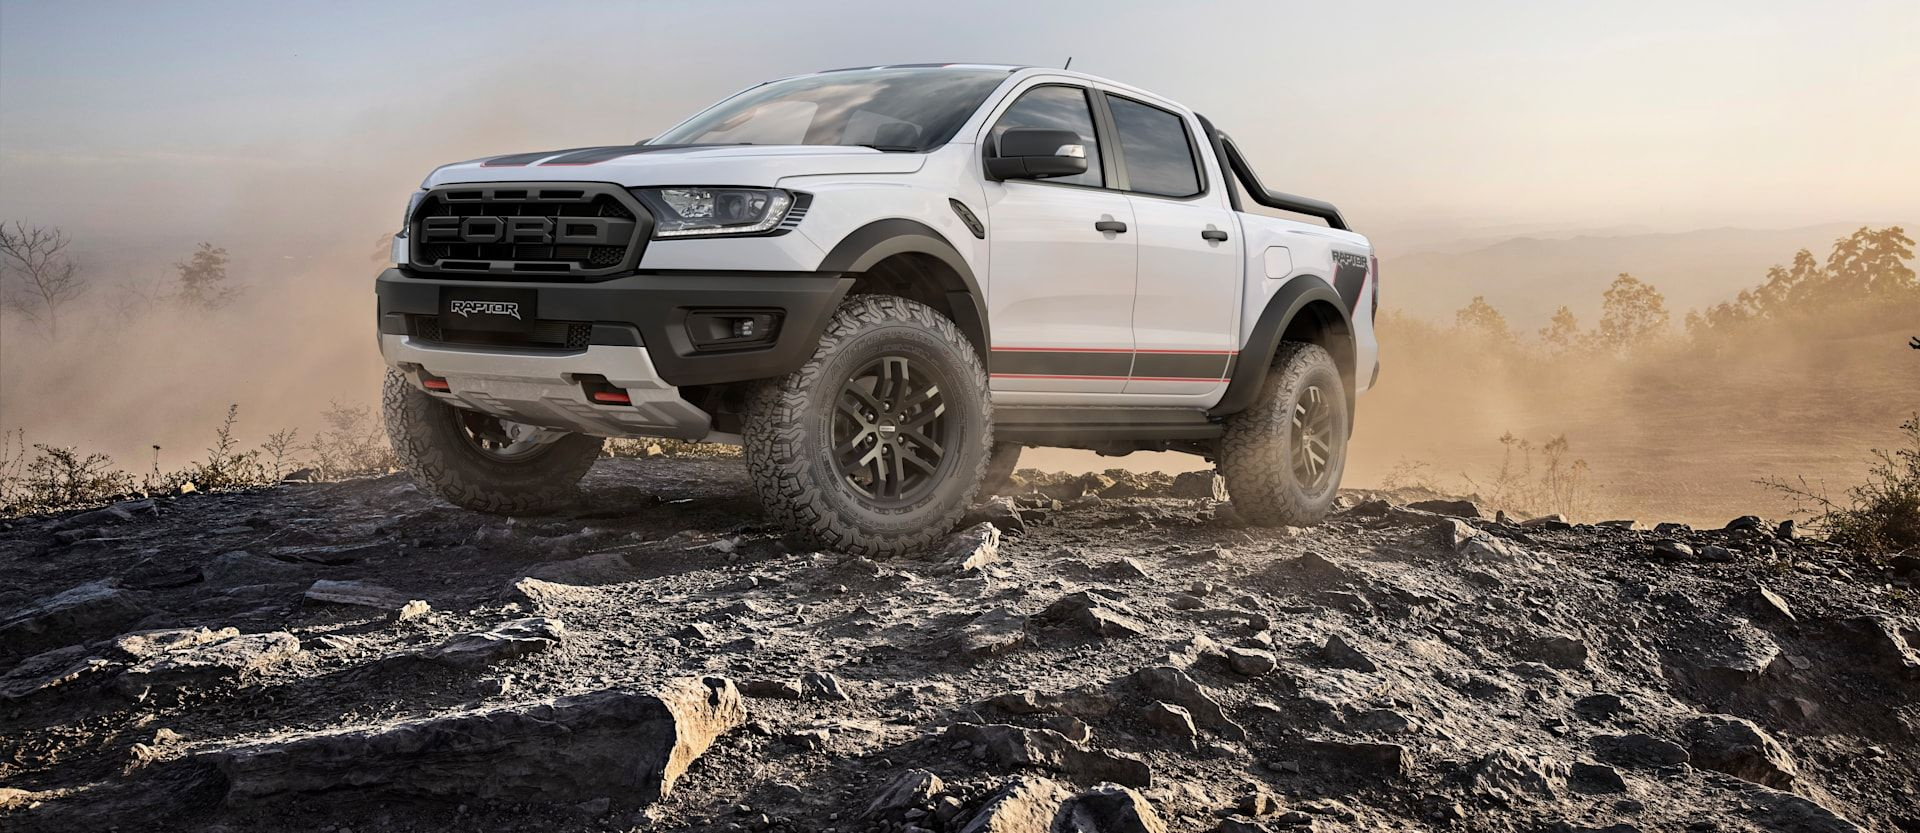 Here's Everything We Know About The Ford Ranger Raptor X